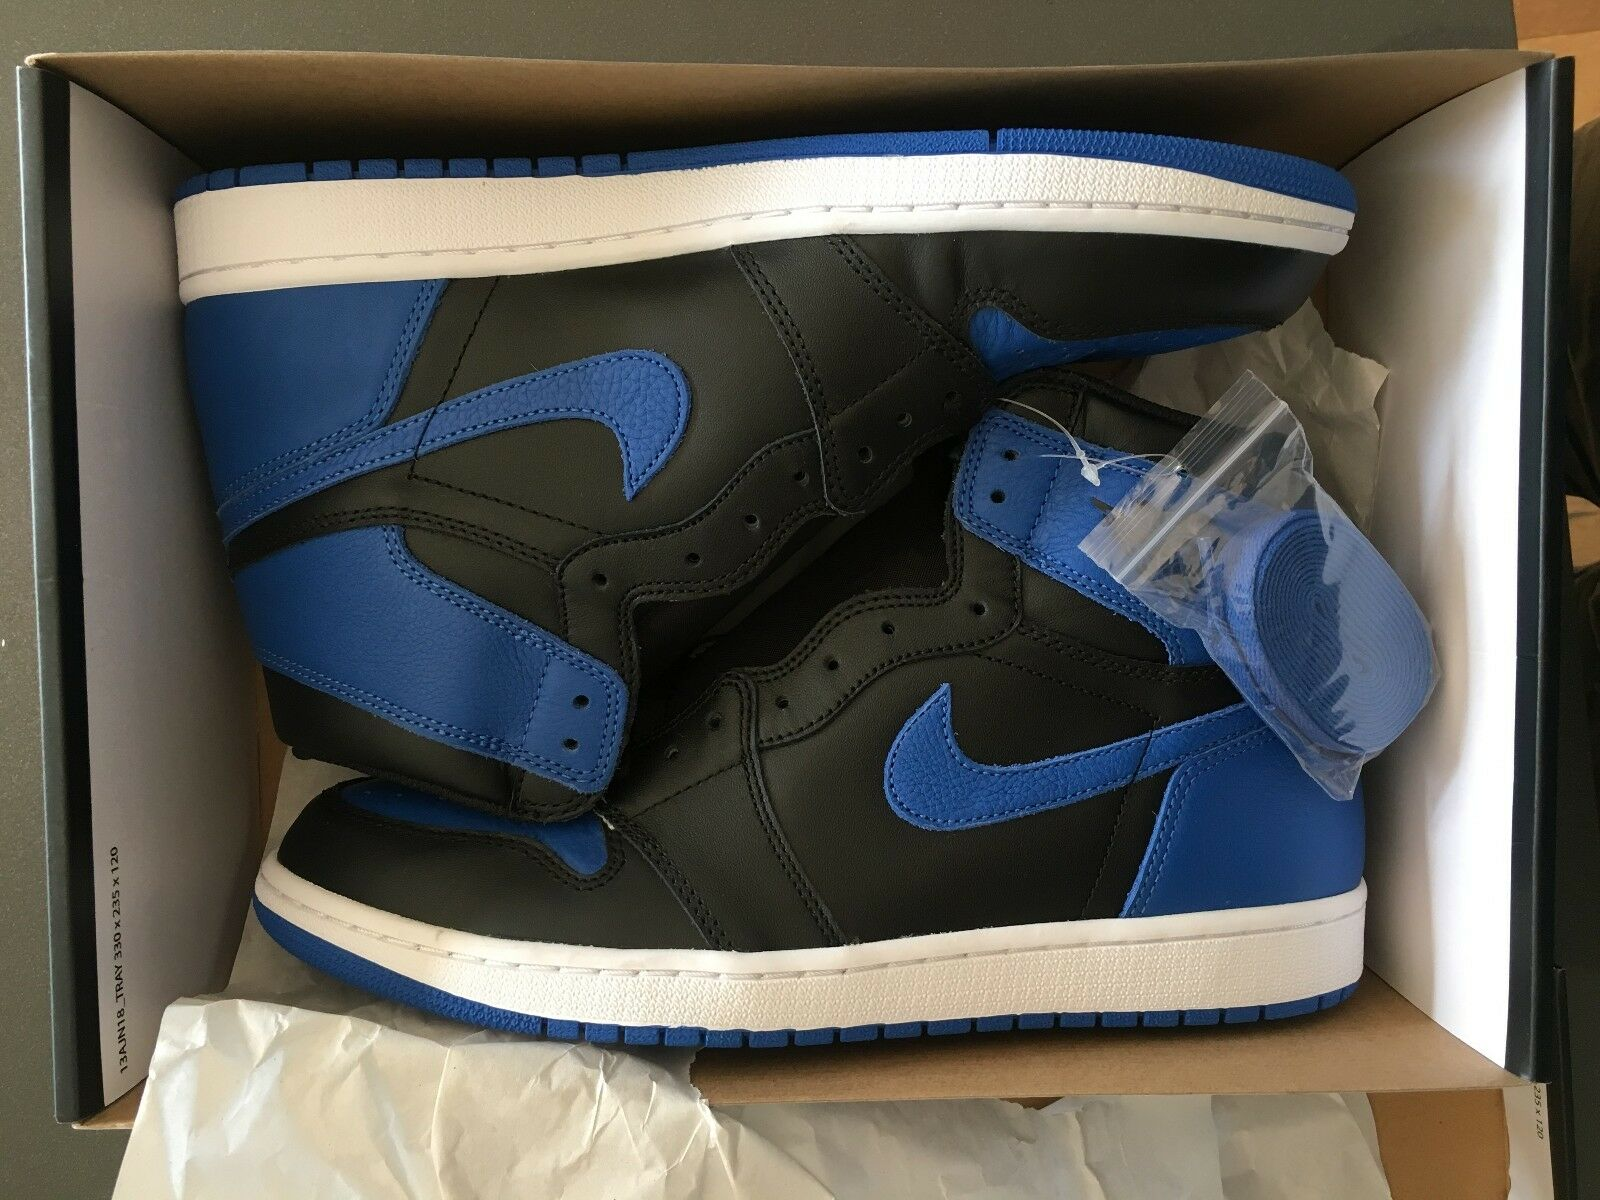 NEW DS NIKE AIR JORDAN RETRO ONE Price reduction  OG ROYAL LIMITED SIZES 11 Cheap women's shoes women's shoes